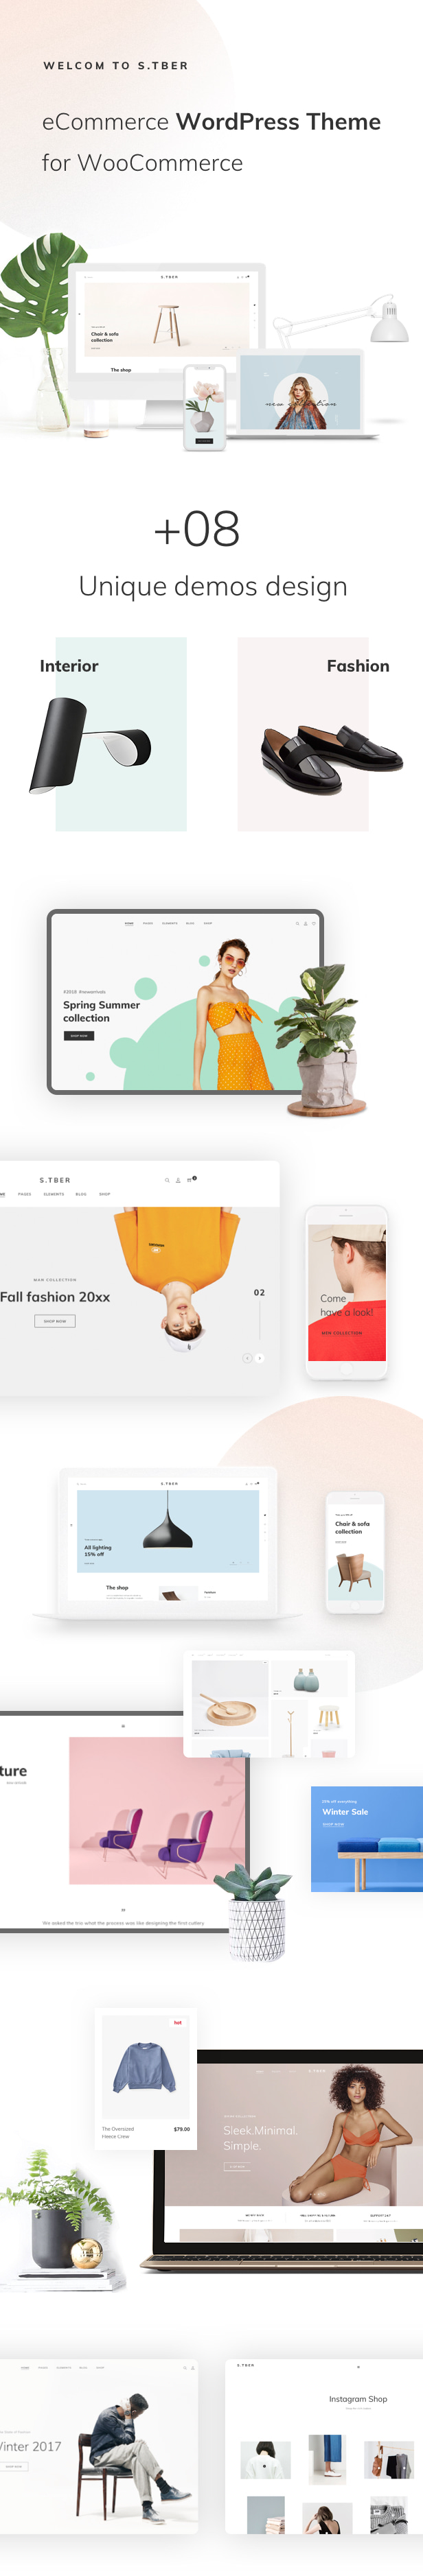 Stber - eCommerce WordPress theme for WooCommerce